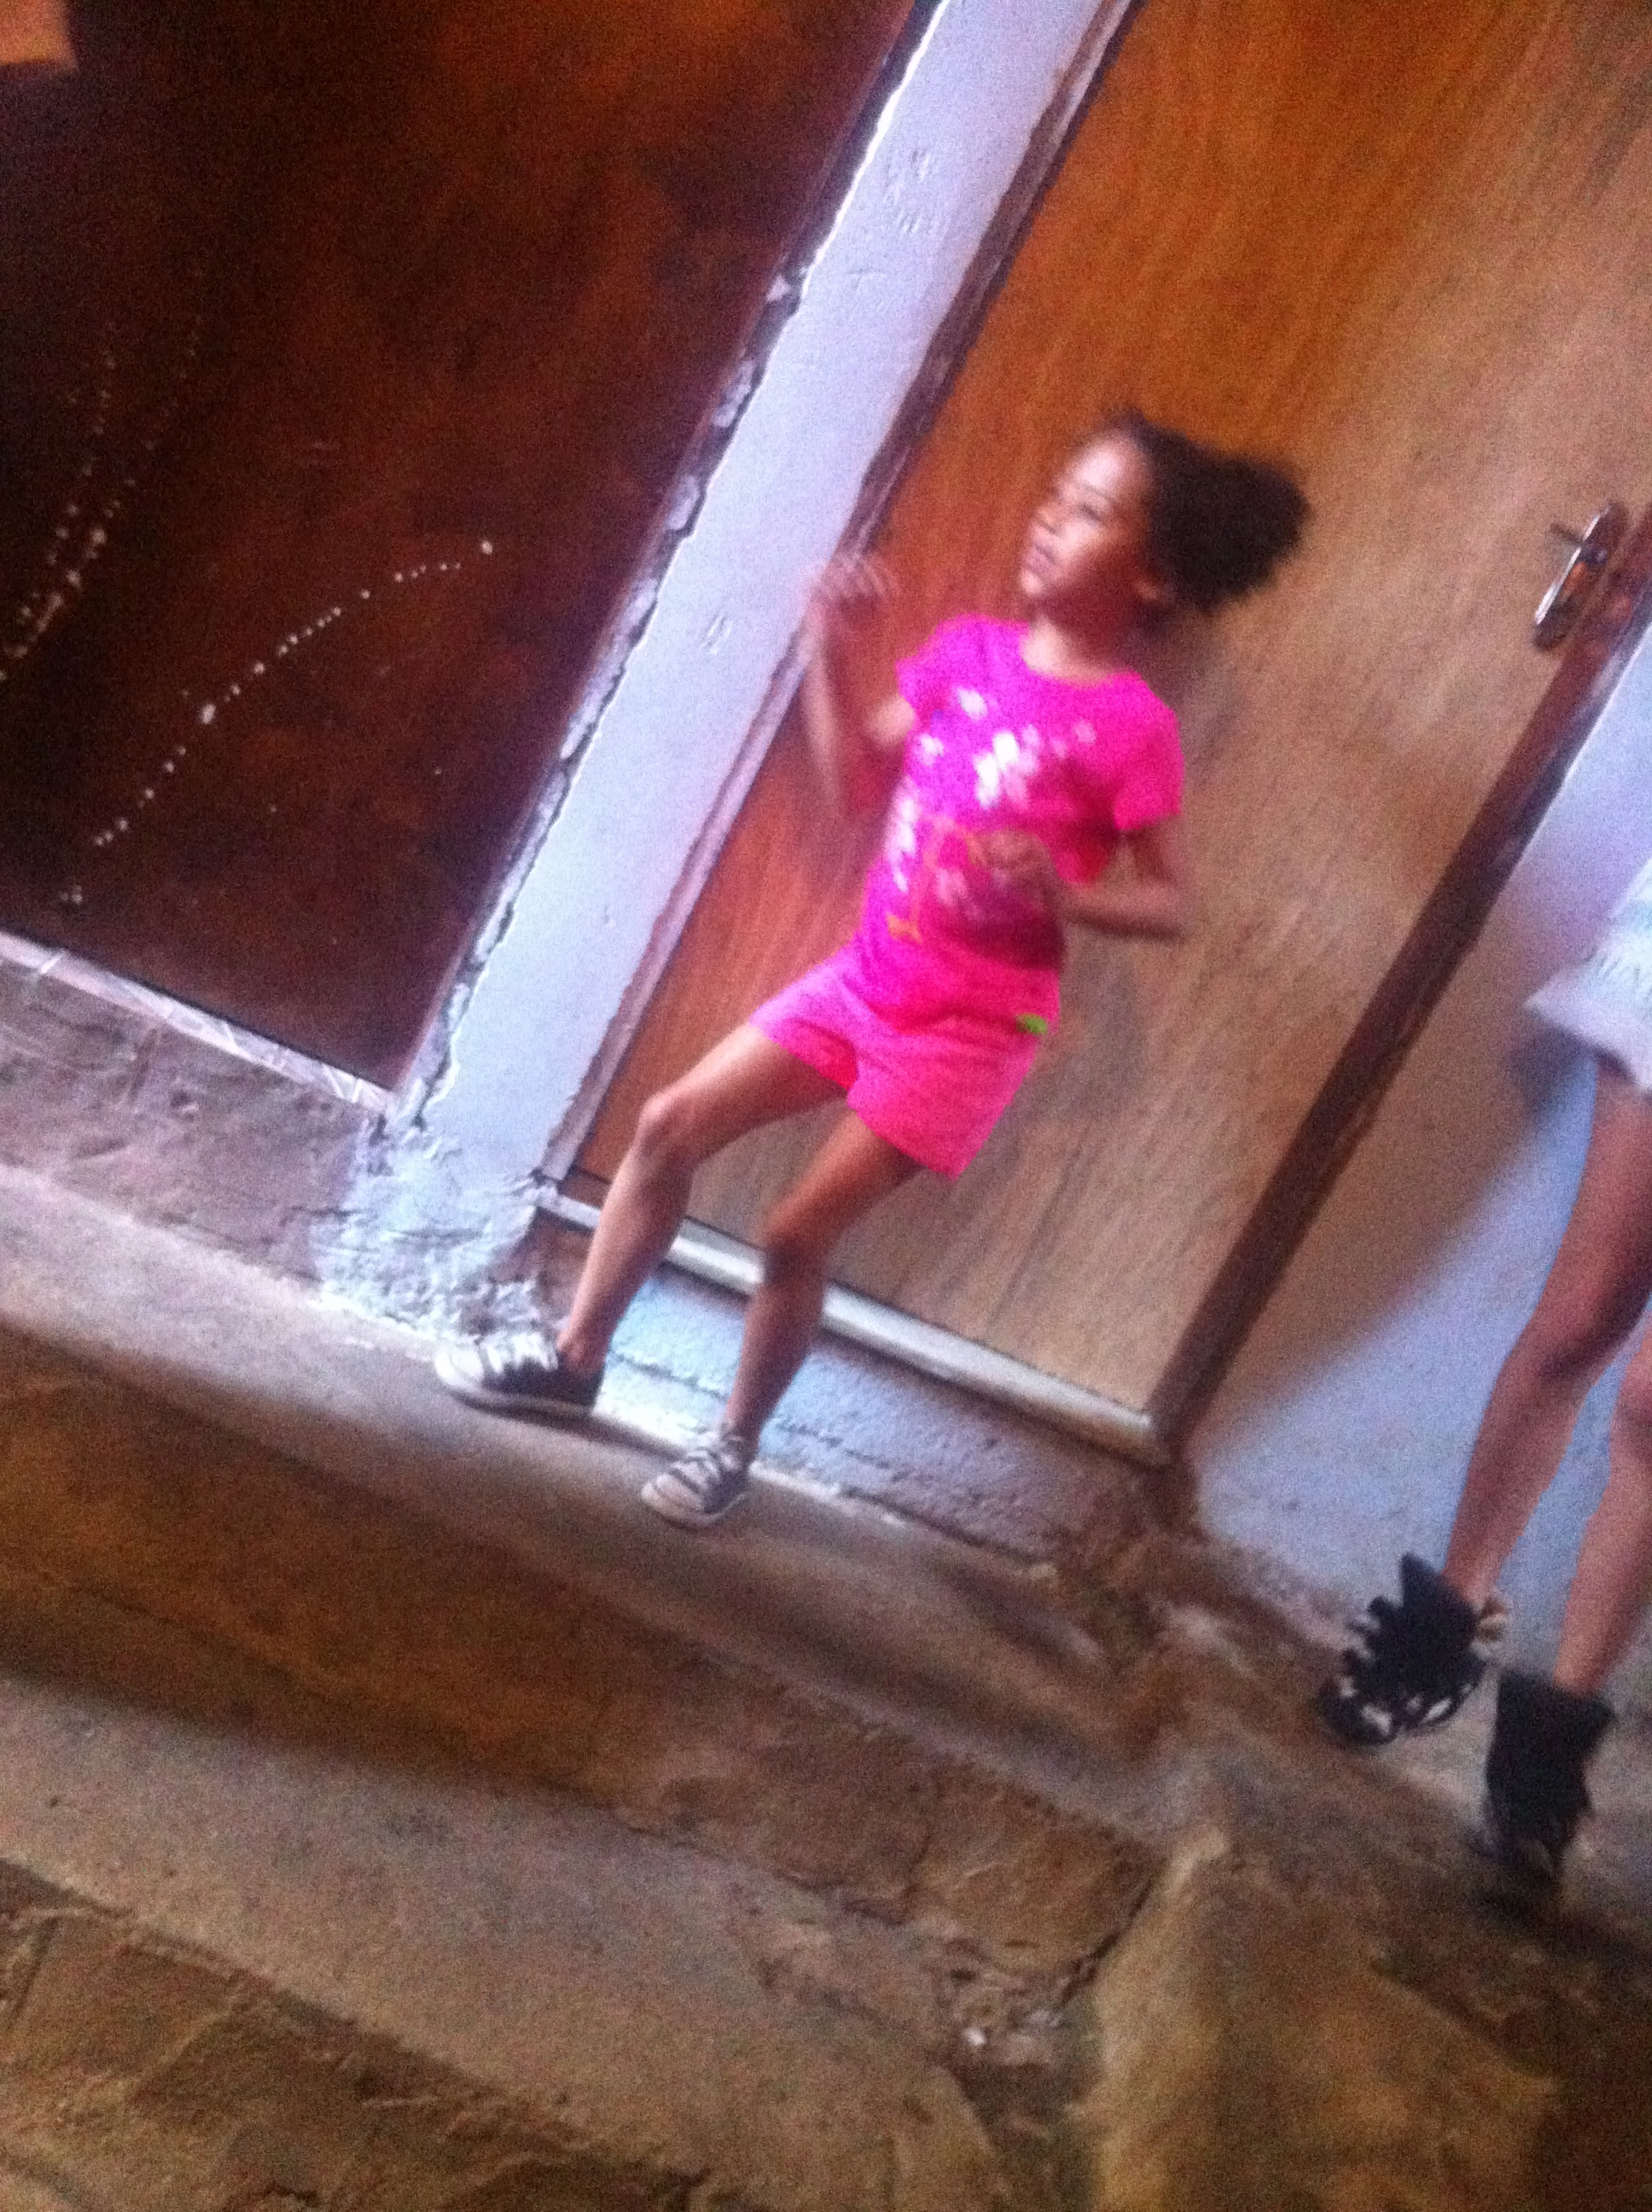 In Rocinha, Brazil at 6 years old